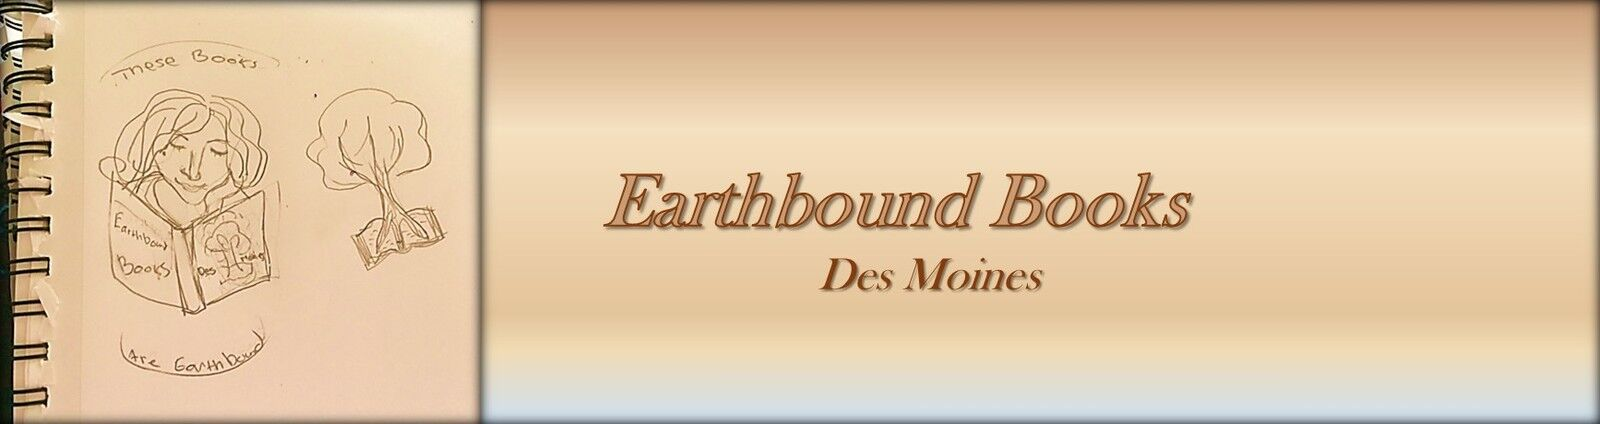 Earthbound Books of Des Moines